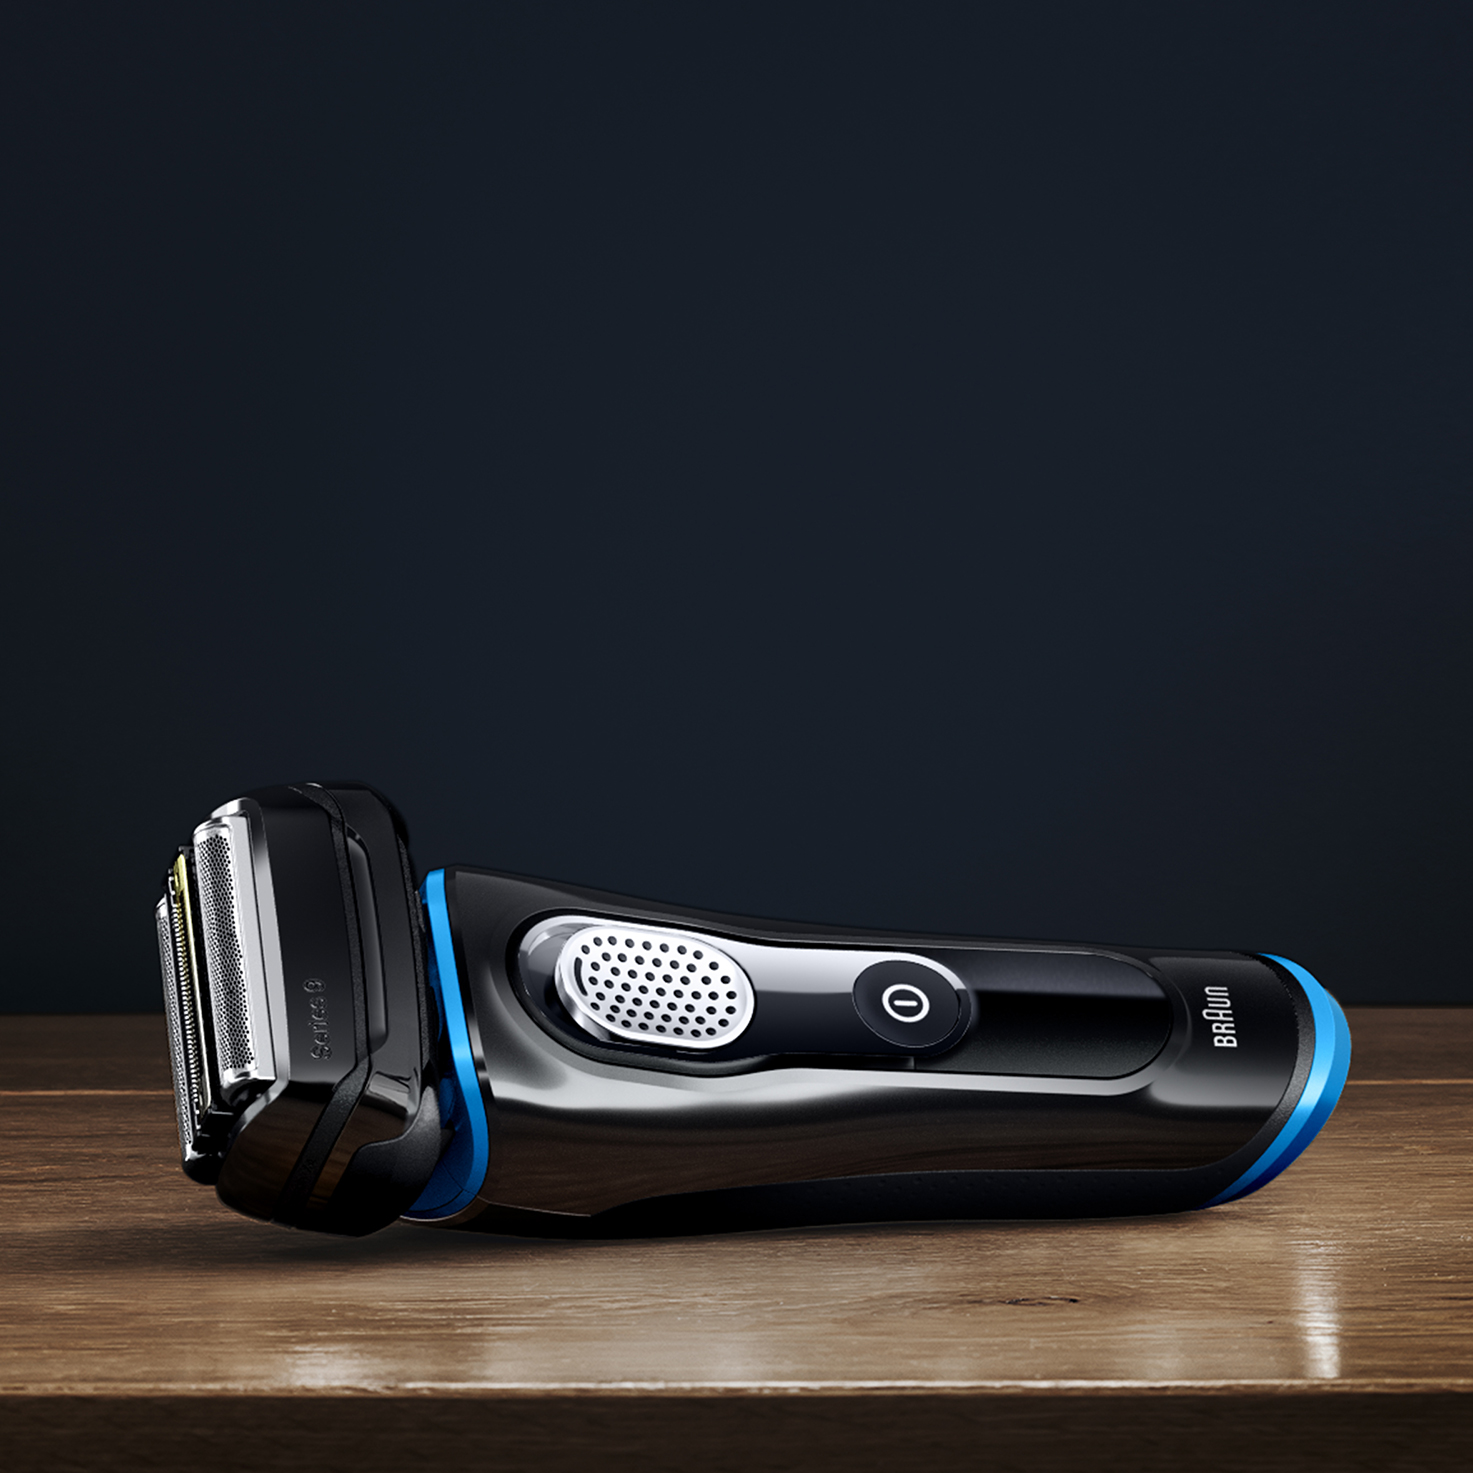 Braun Series 9 shaver - Life style